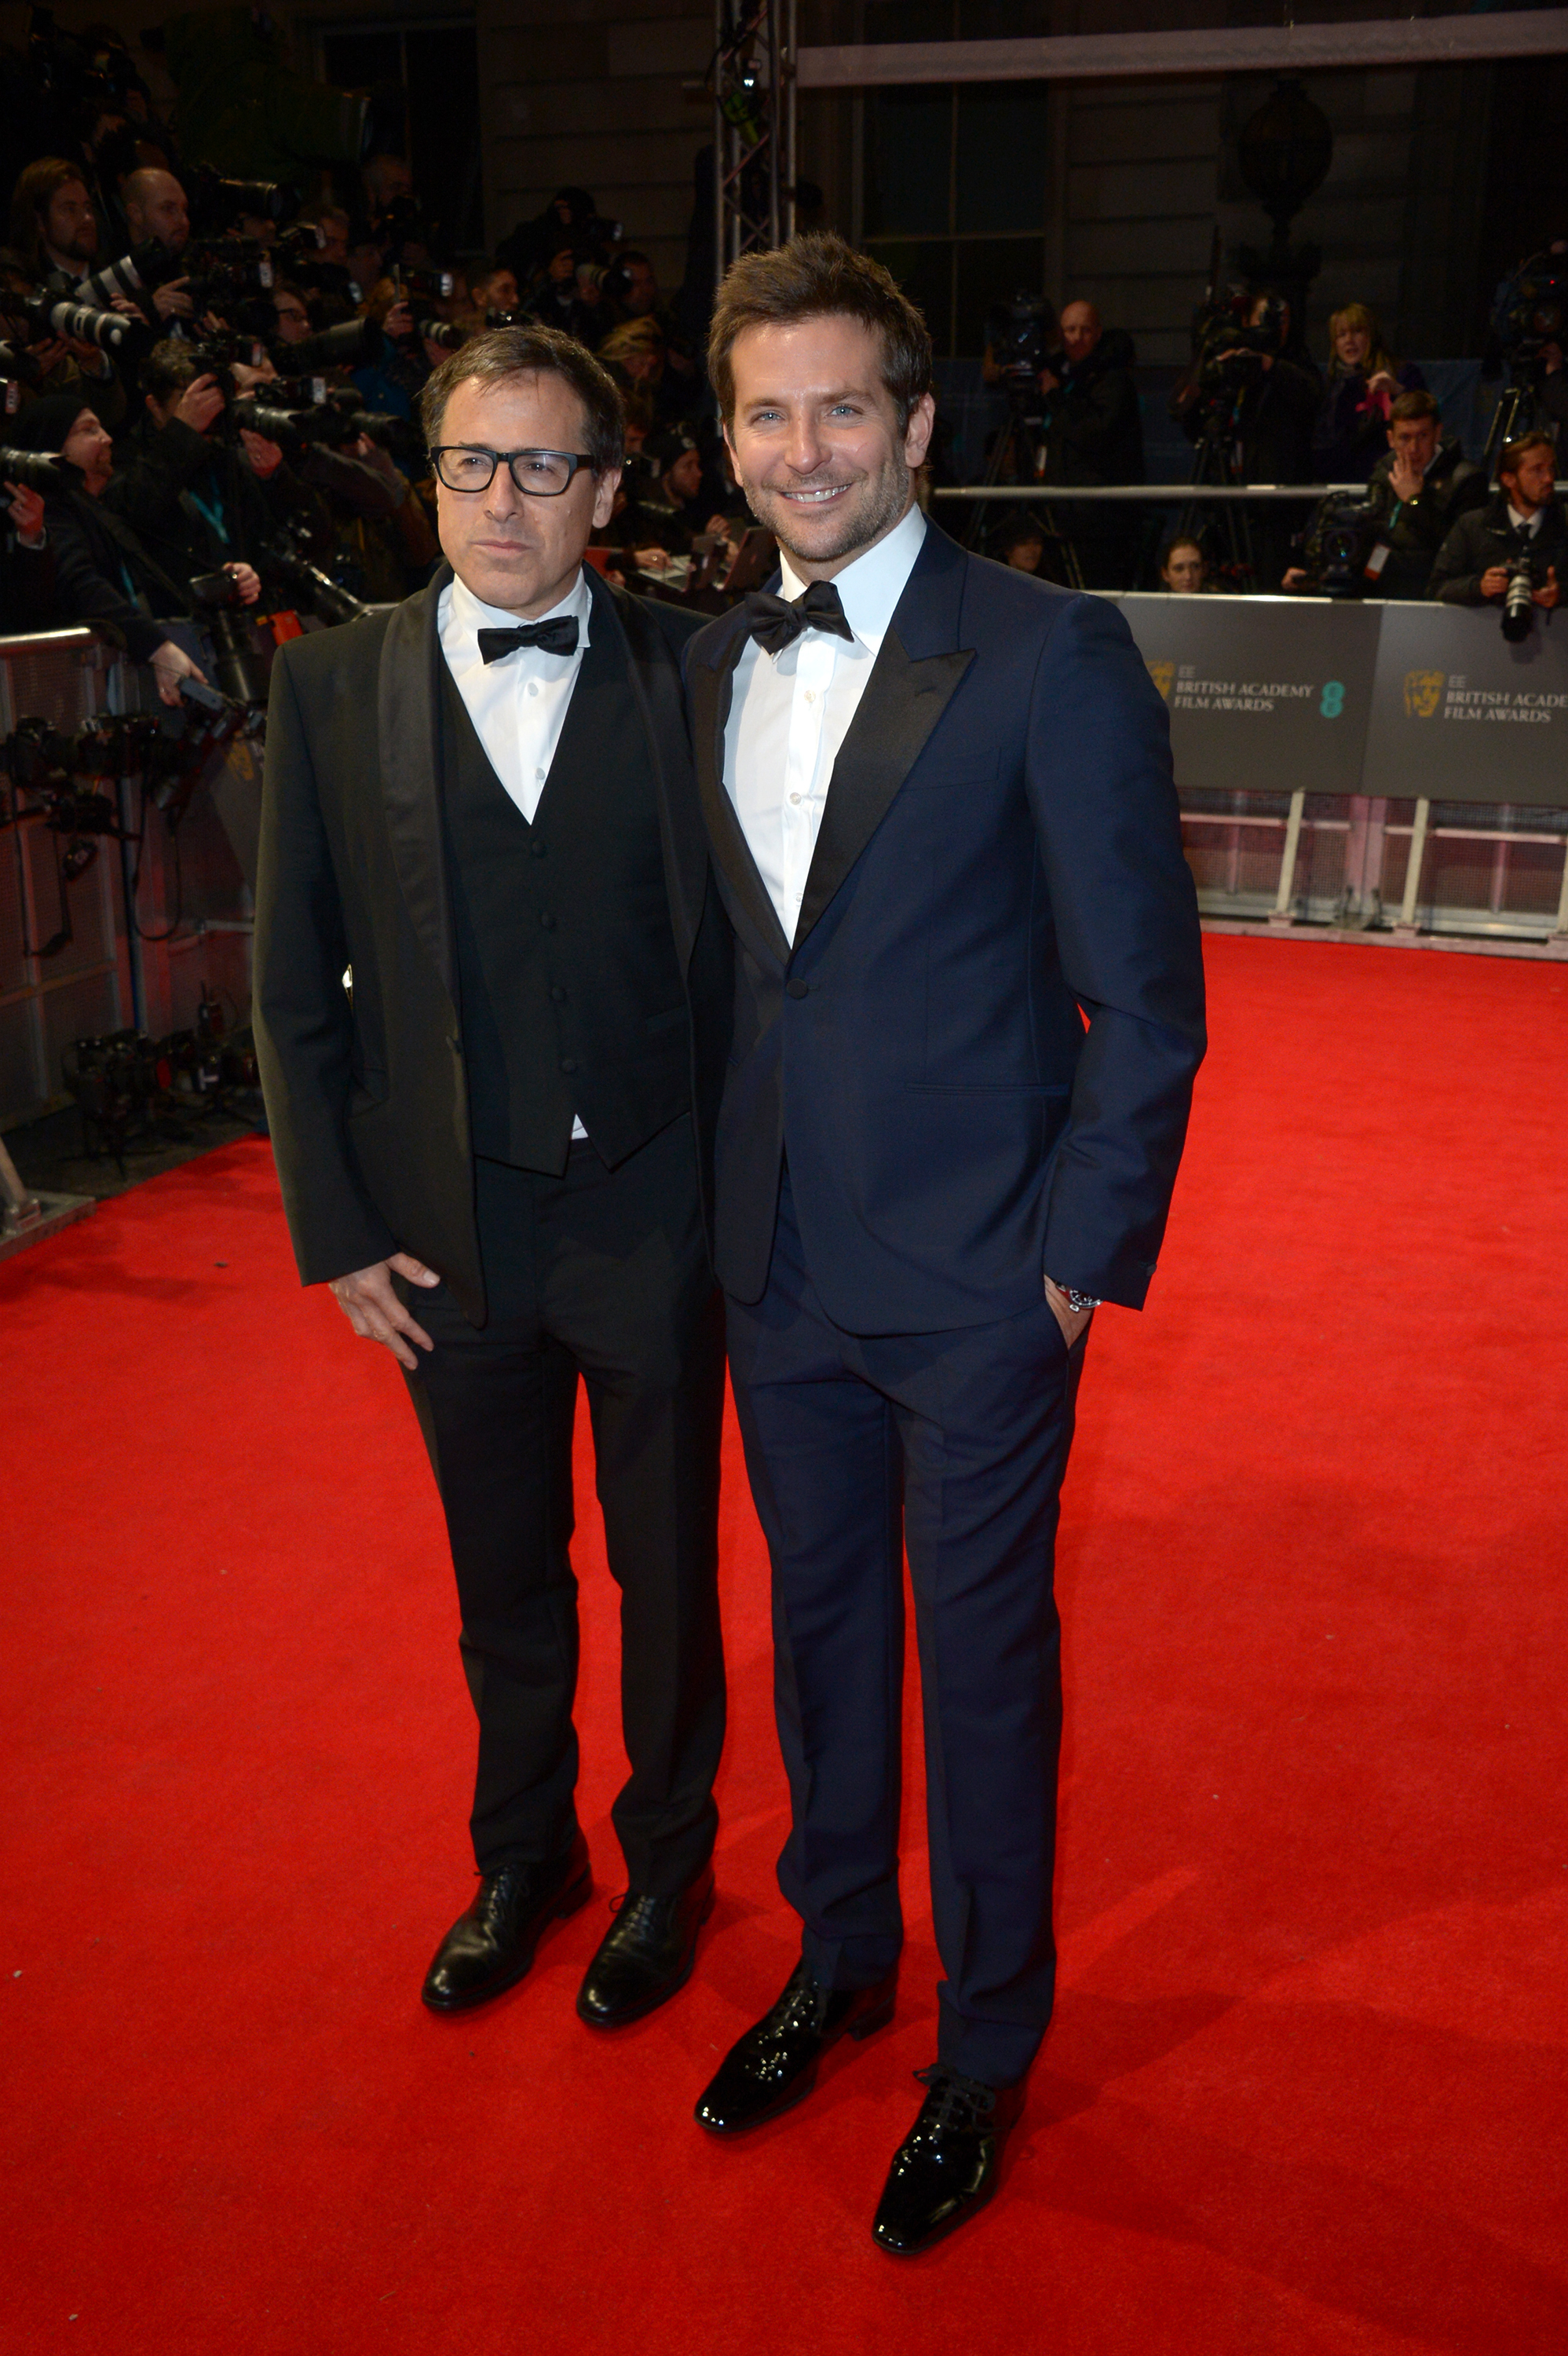 Director David O. Russell and actor Bradley Cooper pose for photographers on the red carpet at the EE British Academy Film Awards in London on Feb. 16, 2014.